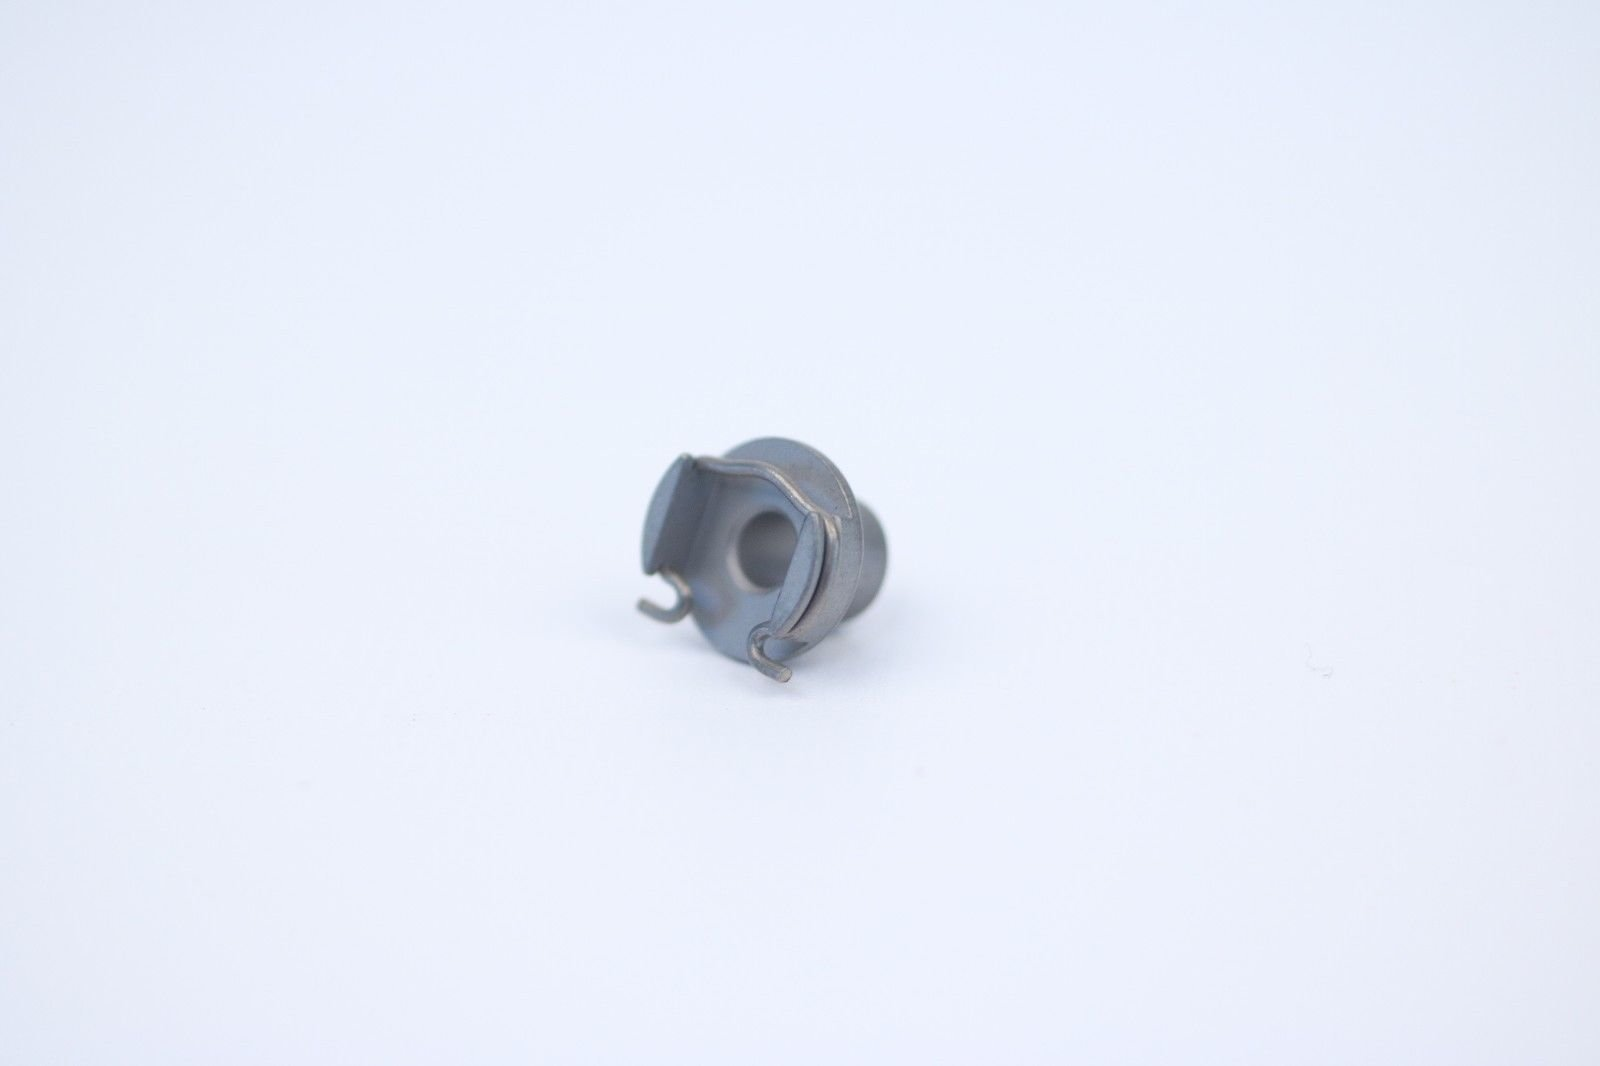 Fatigue Technology Int. Retainer Seal Rivetless Nut Plate Steel Aircraft F-15 by Fatigue Technology International (Image #8)